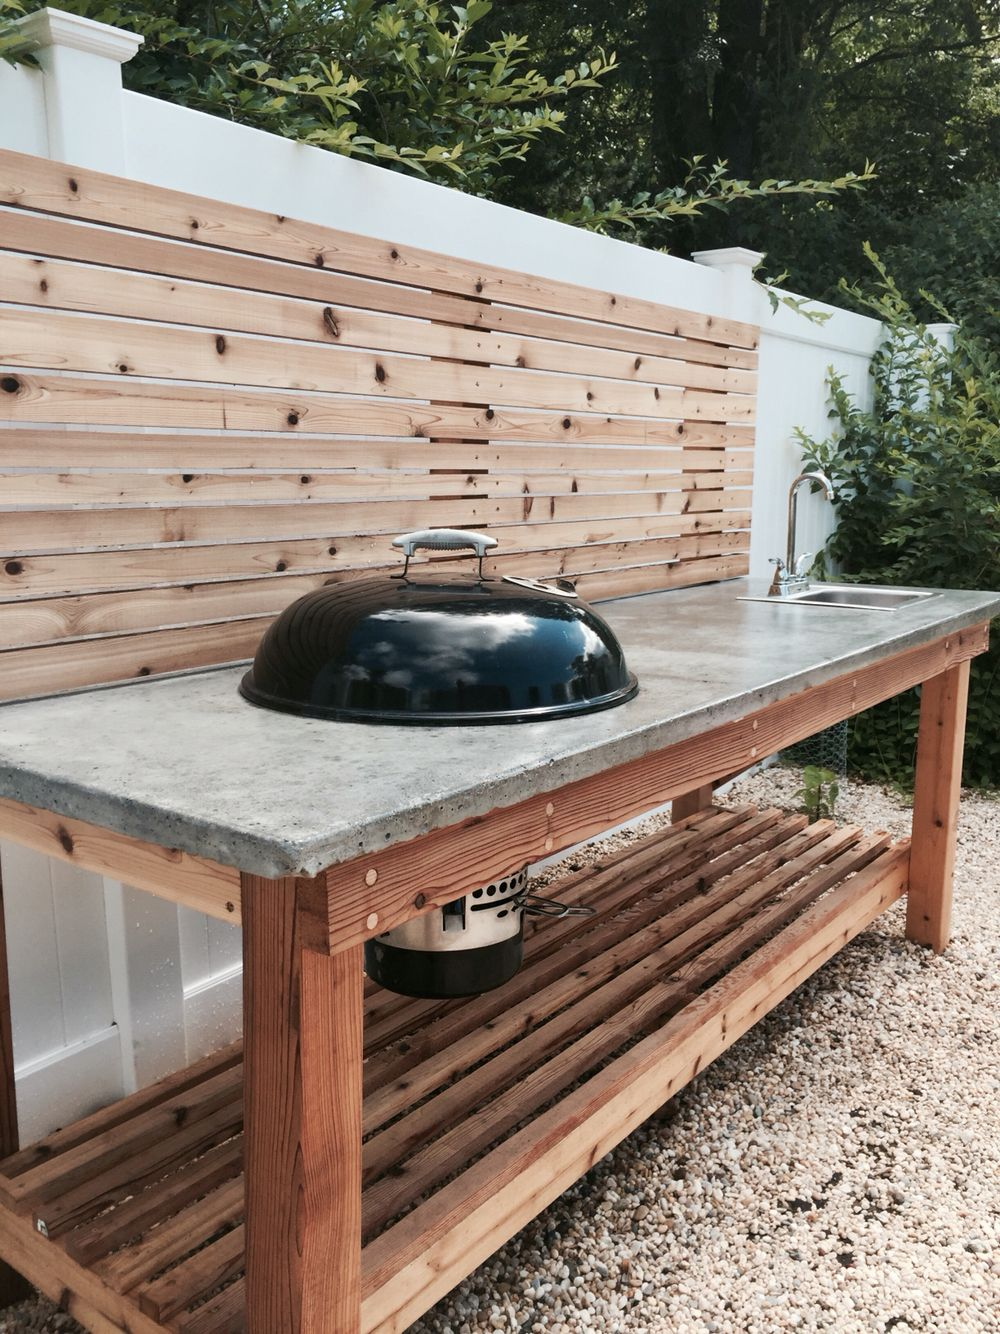 Cedar Wood Outdoor Kitchen With A Concrete Countertop And Built In Best Outdoor Kitchen Charcoal Grill Design Decoration